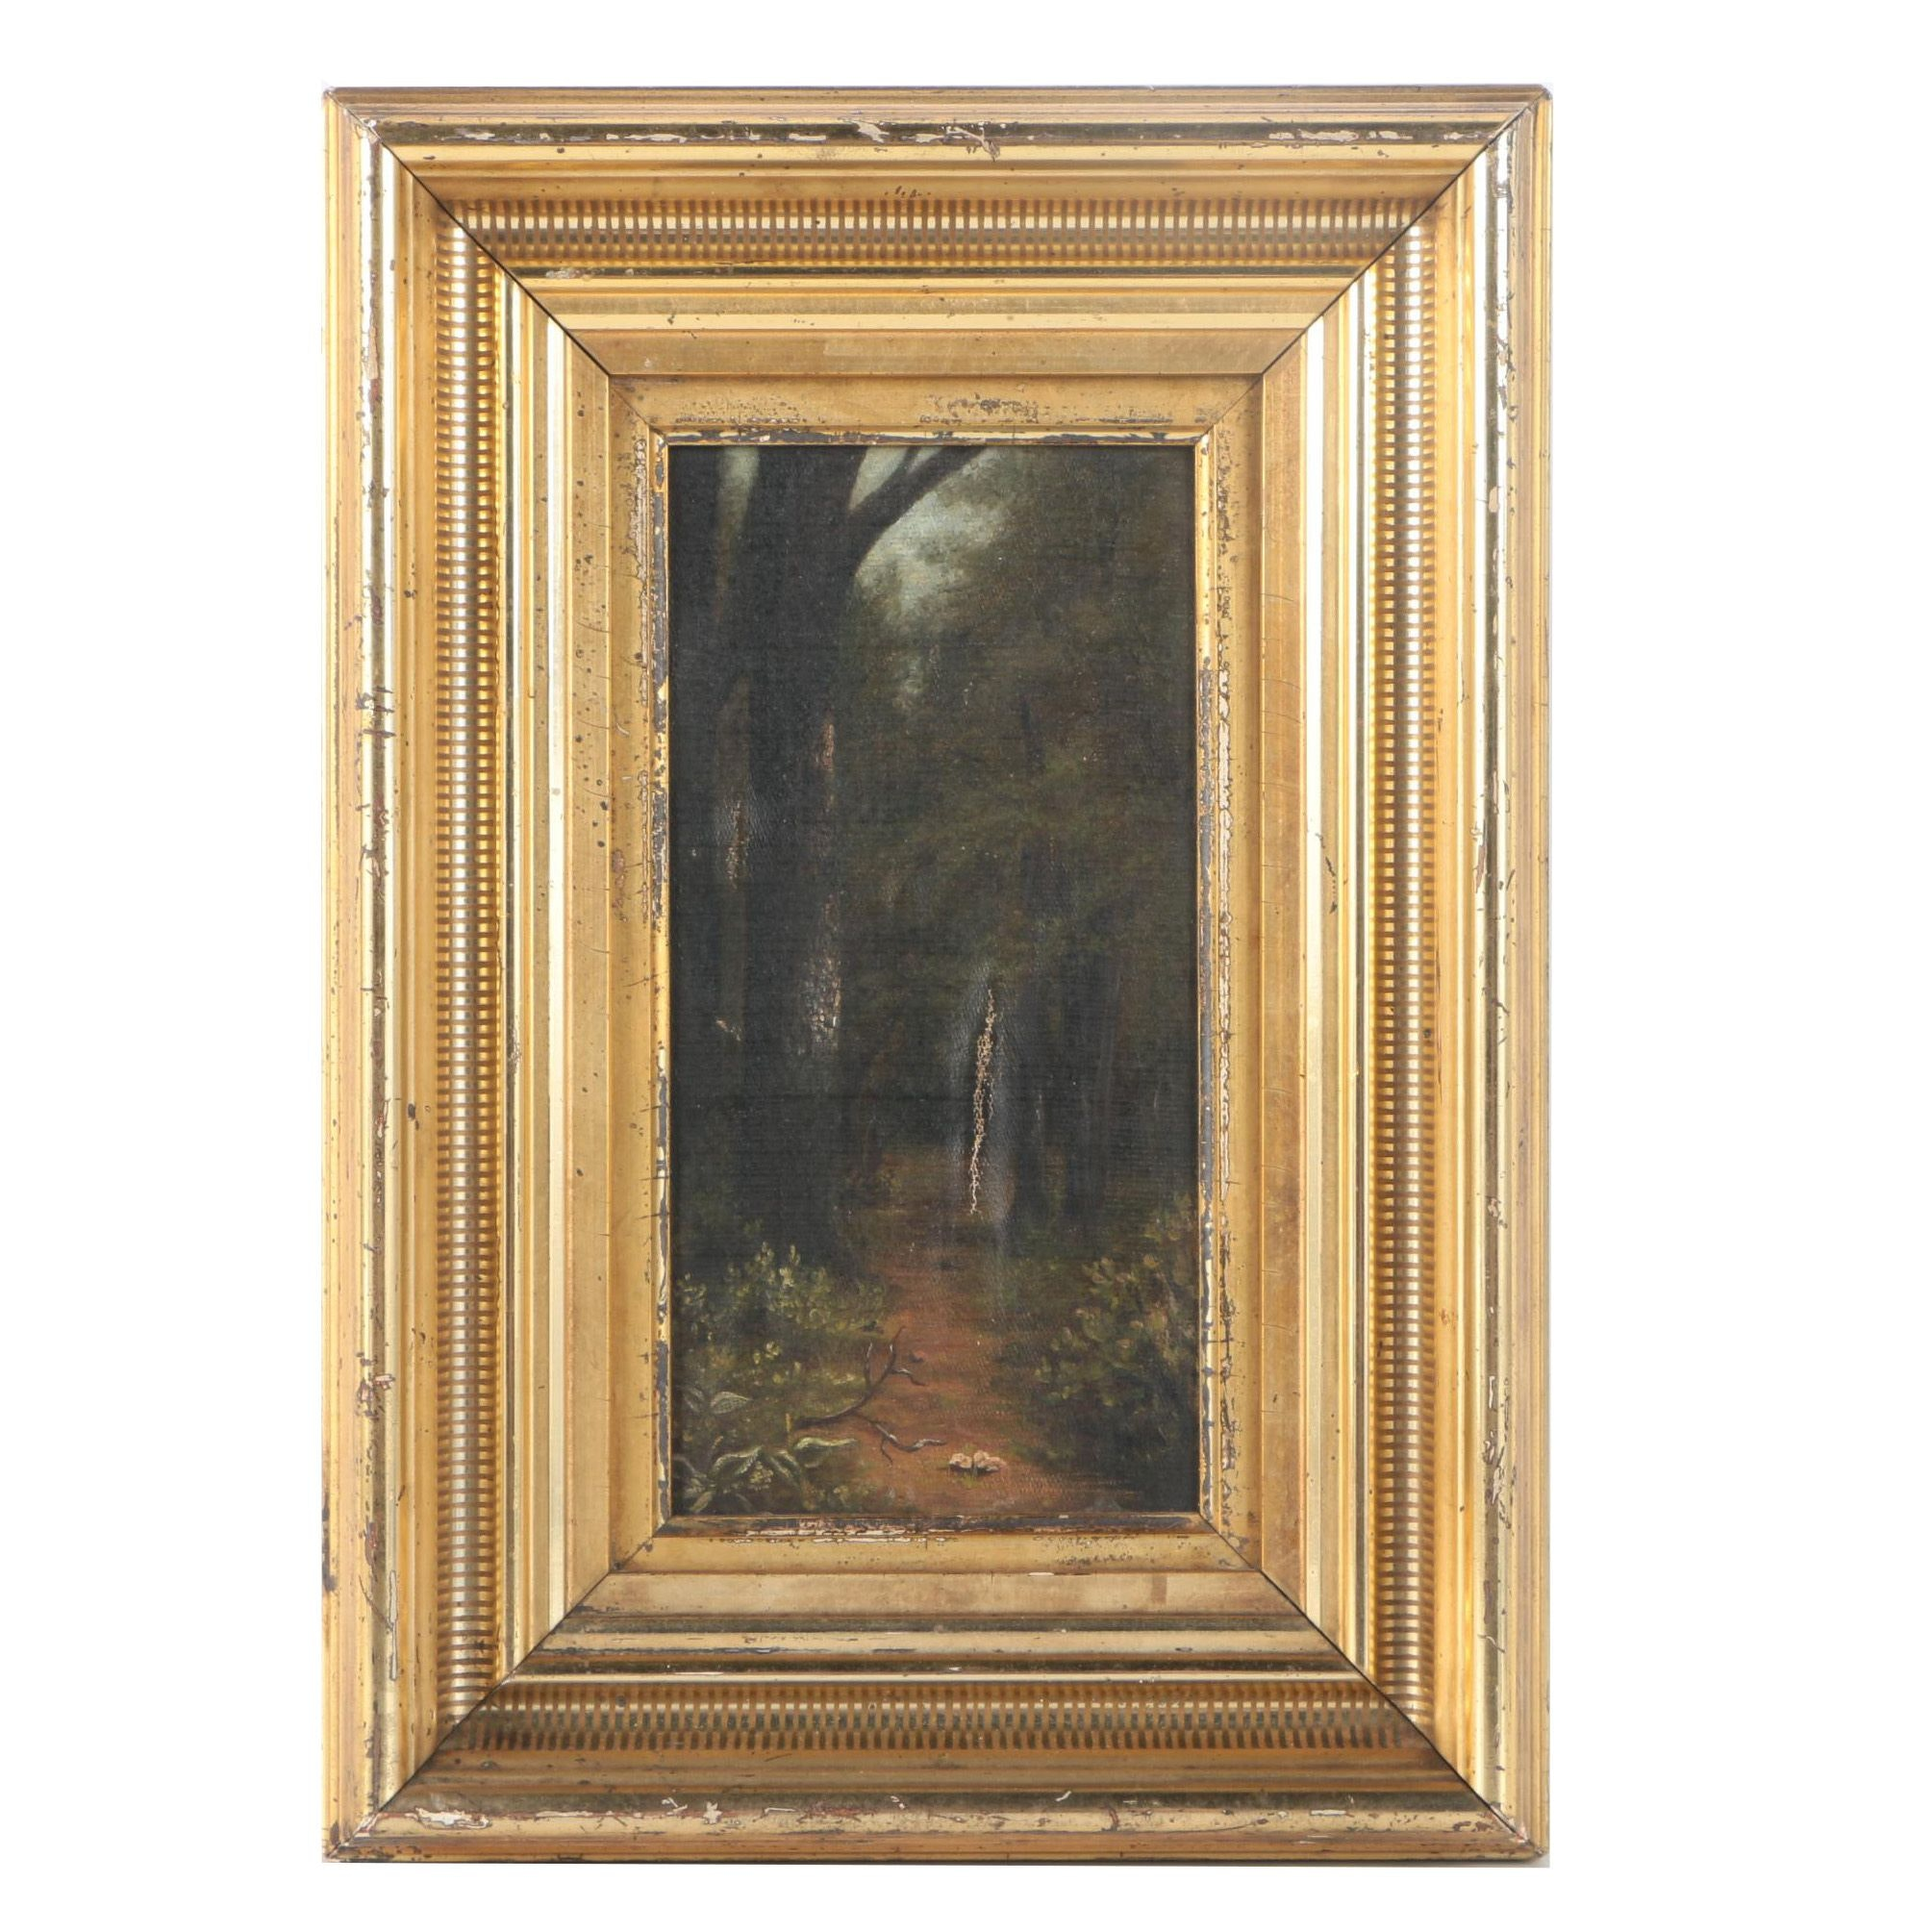 Antique Original Oil Painting on Canvas Board of Wooded Scene